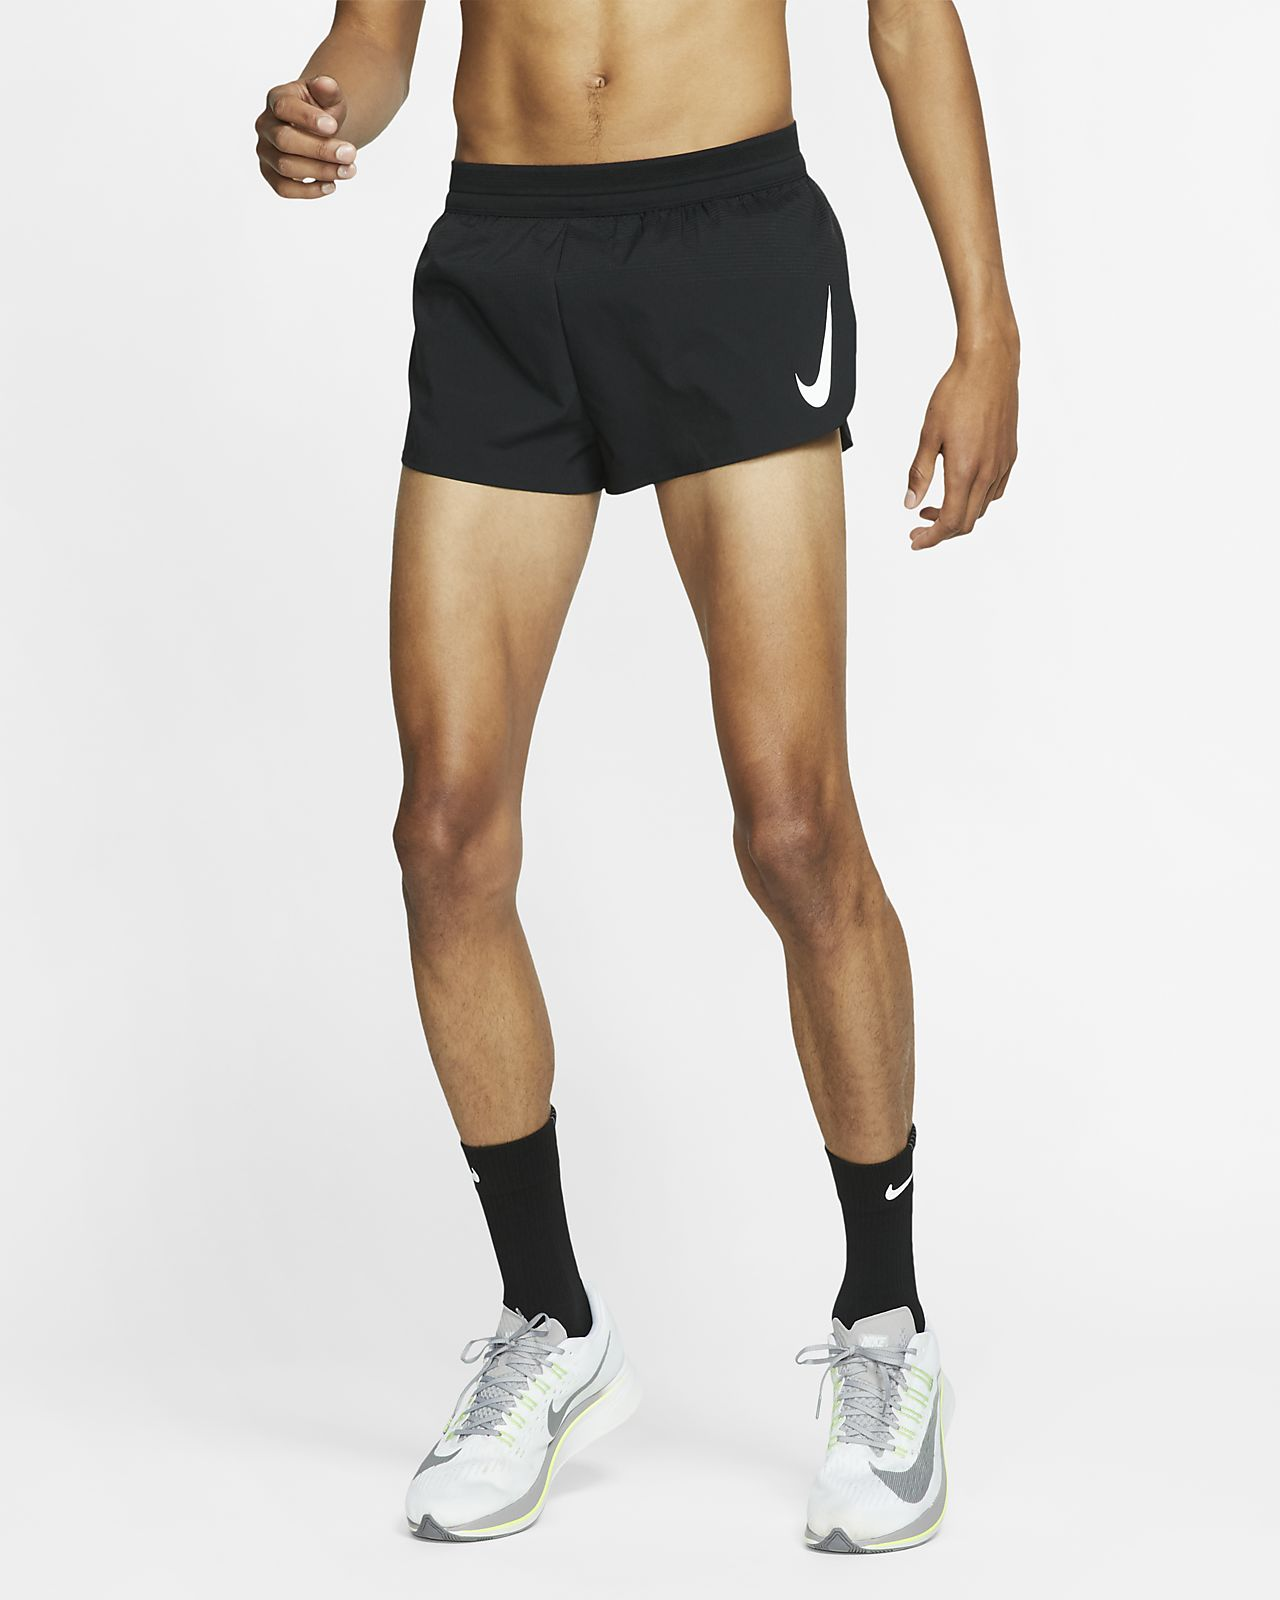 Nike AeroSwift (London) Men's 5cm (approx.) Running Shorts